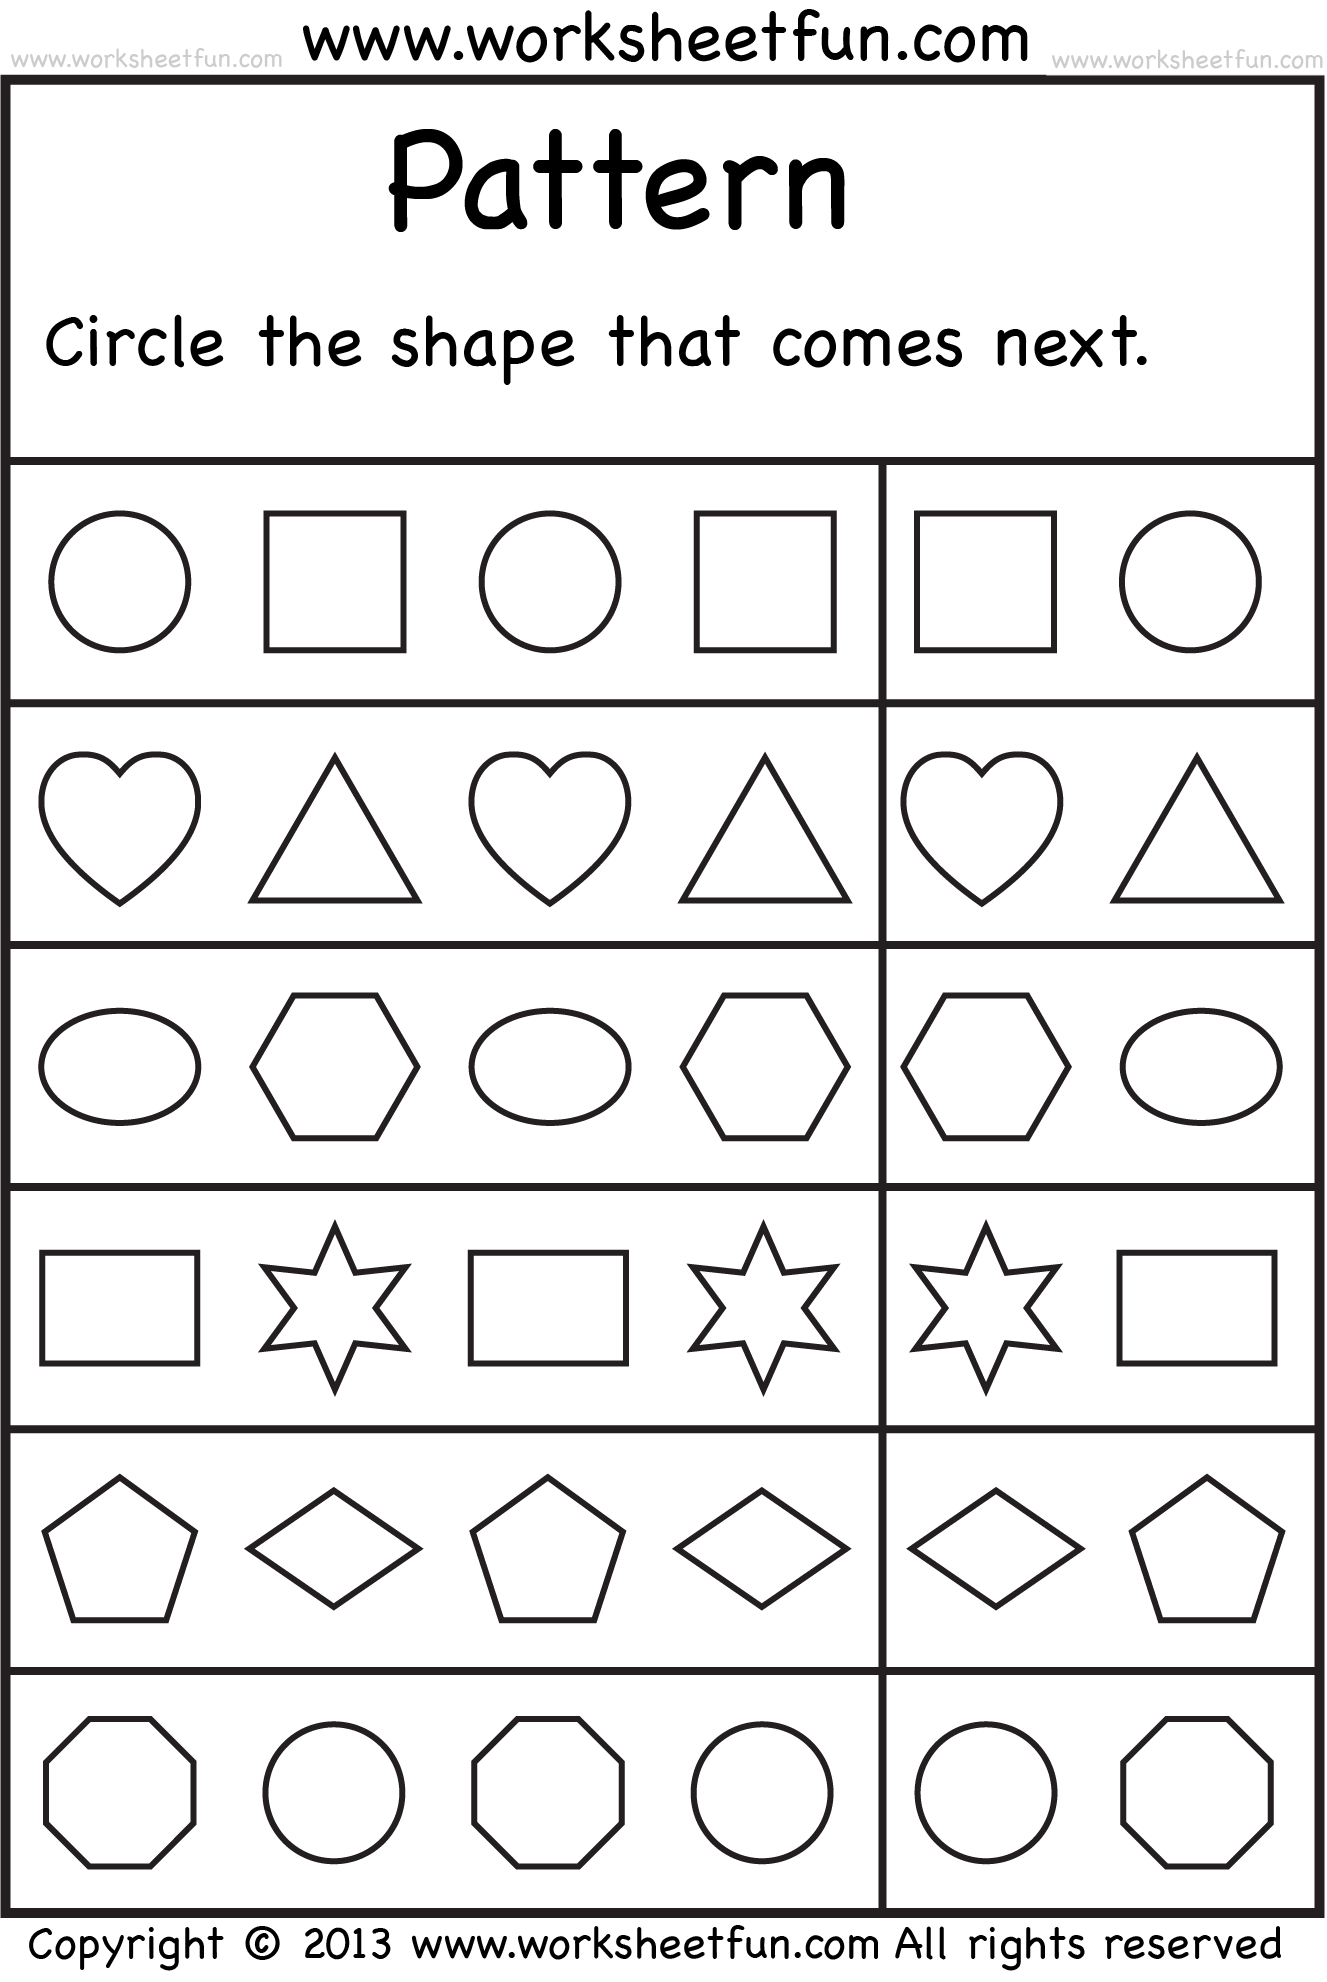 Aldiablosus  Unusual  Images About School Worksheets On Pinterest  Number Words  With Hot  Images About School Worksheets On Pinterest  Number Words Alphabet Worksheets And Free Printable Kindergarten Worksheets With Cool Prefix Sentences Worksheet Also Worksheets On Measurement For Grade  In Addition Math Worksheets For Preschoolers Printables And Number Problems Worksheet As Well As Force   Motion Worksheets Additionally Similar Shapes Proportions Worksheet From Pinterestcom With Aldiablosus  Hot  Images About School Worksheets On Pinterest  Number Words  With Cool  Images About School Worksheets On Pinterest  Number Words Alphabet Worksheets And Free Printable Kindergarten Worksheets And Unusual Prefix Sentences Worksheet Also Worksheets On Measurement For Grade  In Addition Math Worksheets For Preschoolers Printables From Pinterestcom